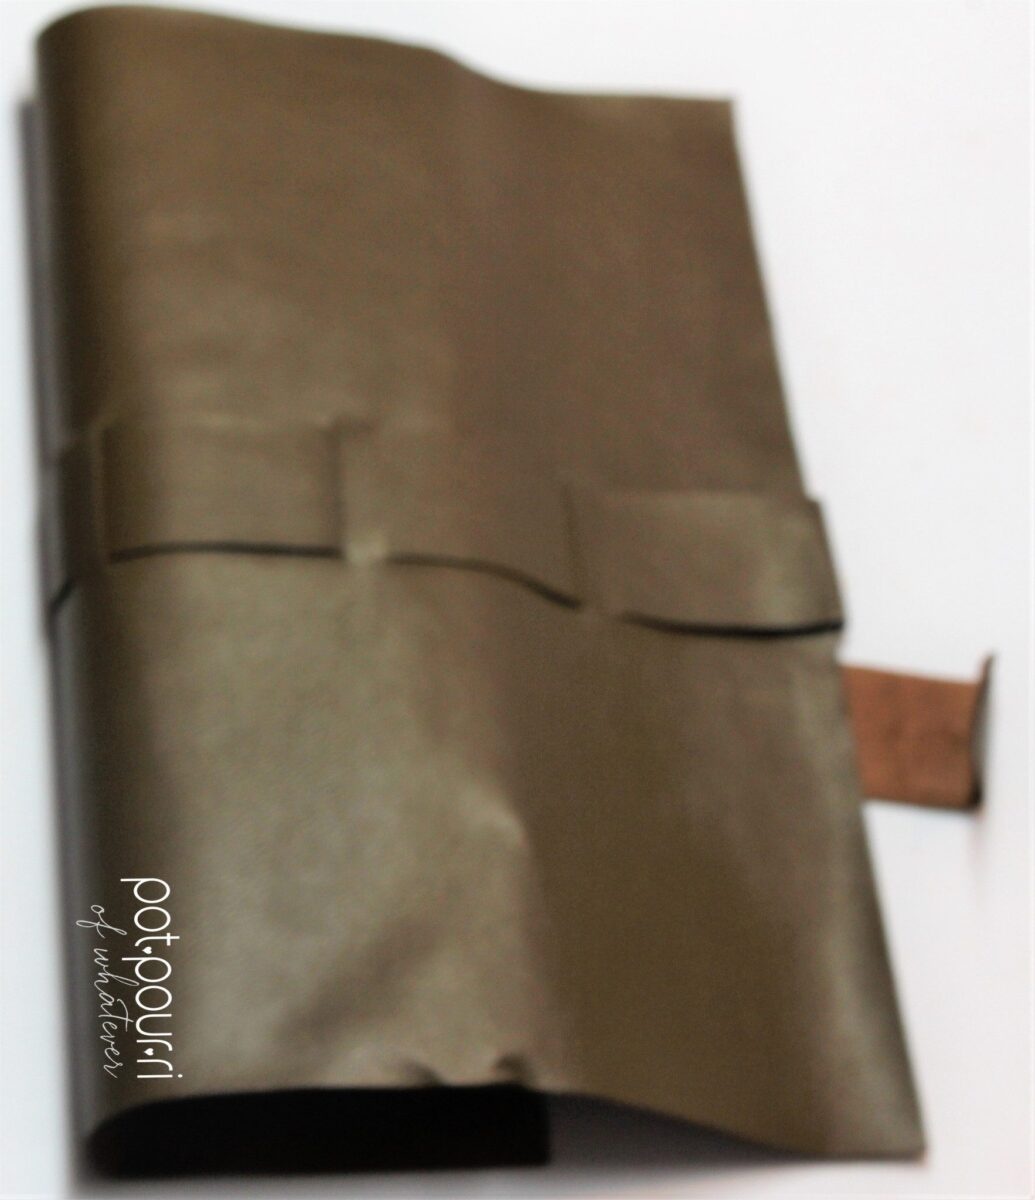 the brush roll is brown leatherette, lightweight with the logo in gold